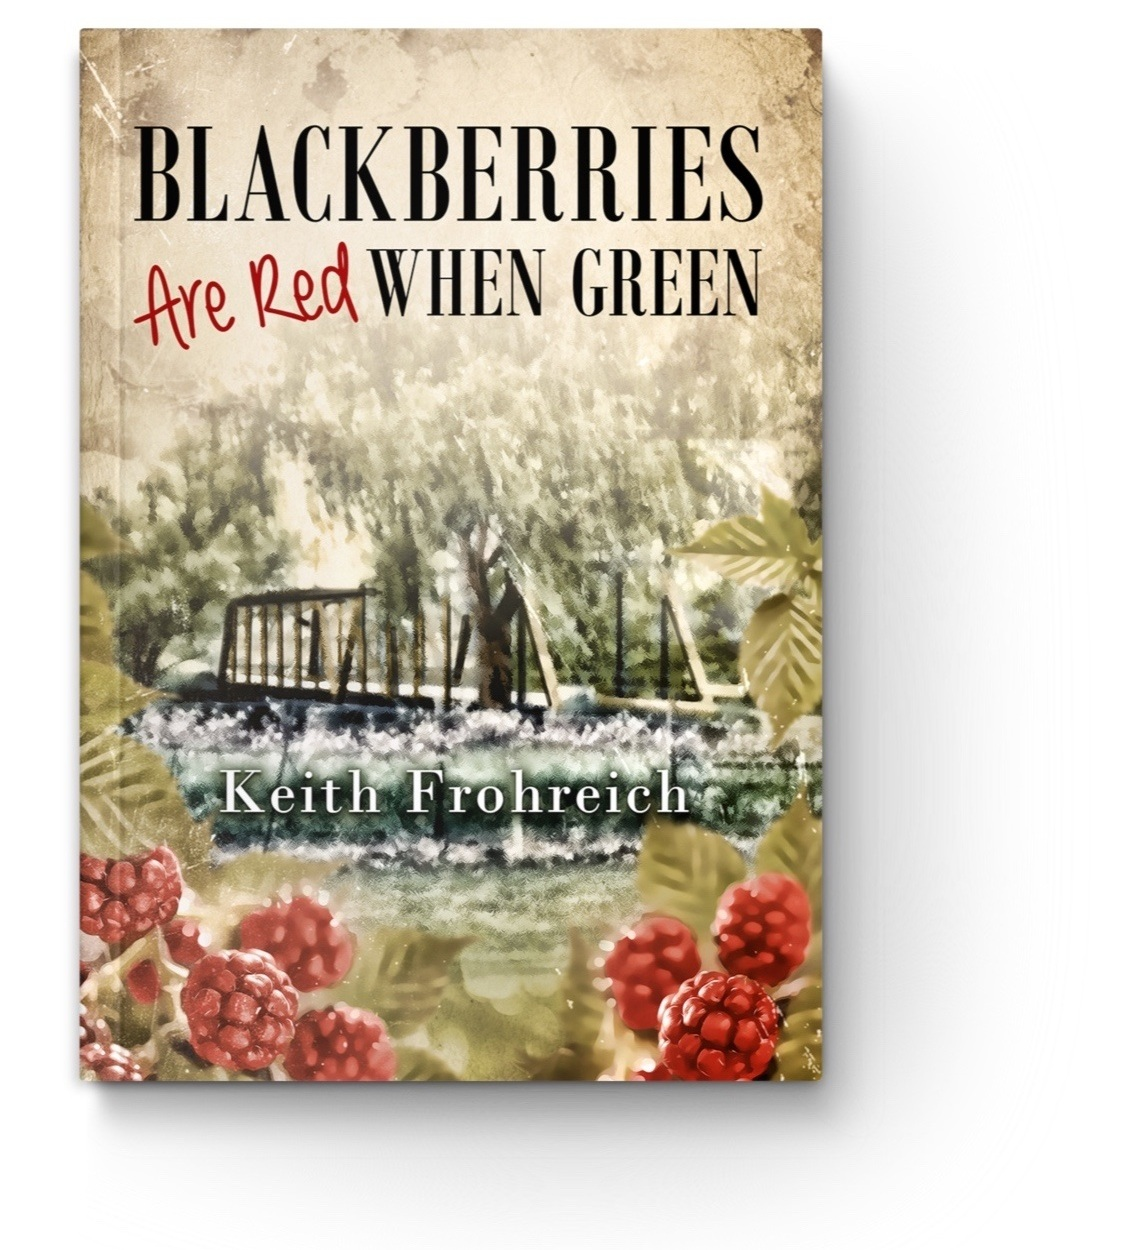 Blackberries Are Red When Green - Over the three years leading up to the murders of 1960, young Kurt Baumann's world had been rocked by the loss of his dad, his best friend, and his dog, leading him to doubt the existence of God. A year after losing his father, a retired Pullman Porter moves into a small shack across the river from the small Baumann farm. Change colors the air. Kurt now has a new friend who disrupts and enlivened Kurt's life with tales while lolling the day away bass fishing down the riverbank. In less than a month, two murders traumatize the sleepy village of Adams Creek, Indiana.